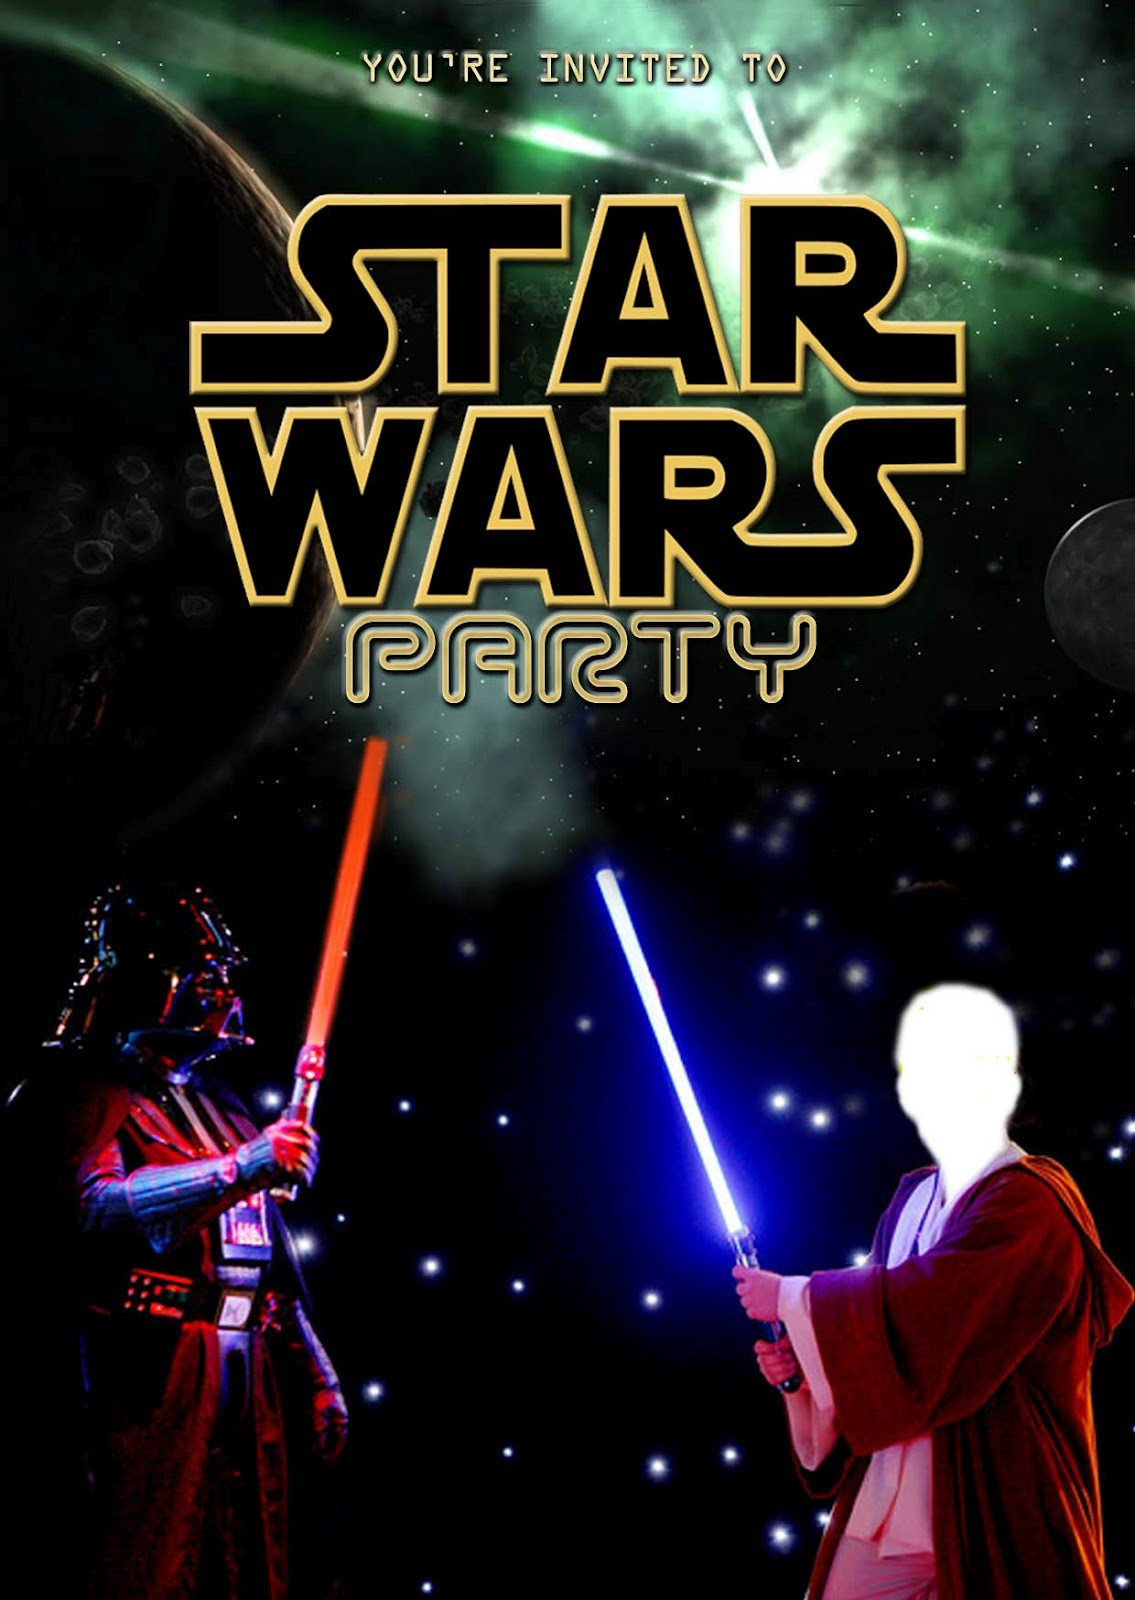 Free Kids Party Invitations  Star Wars Party Invitation (self